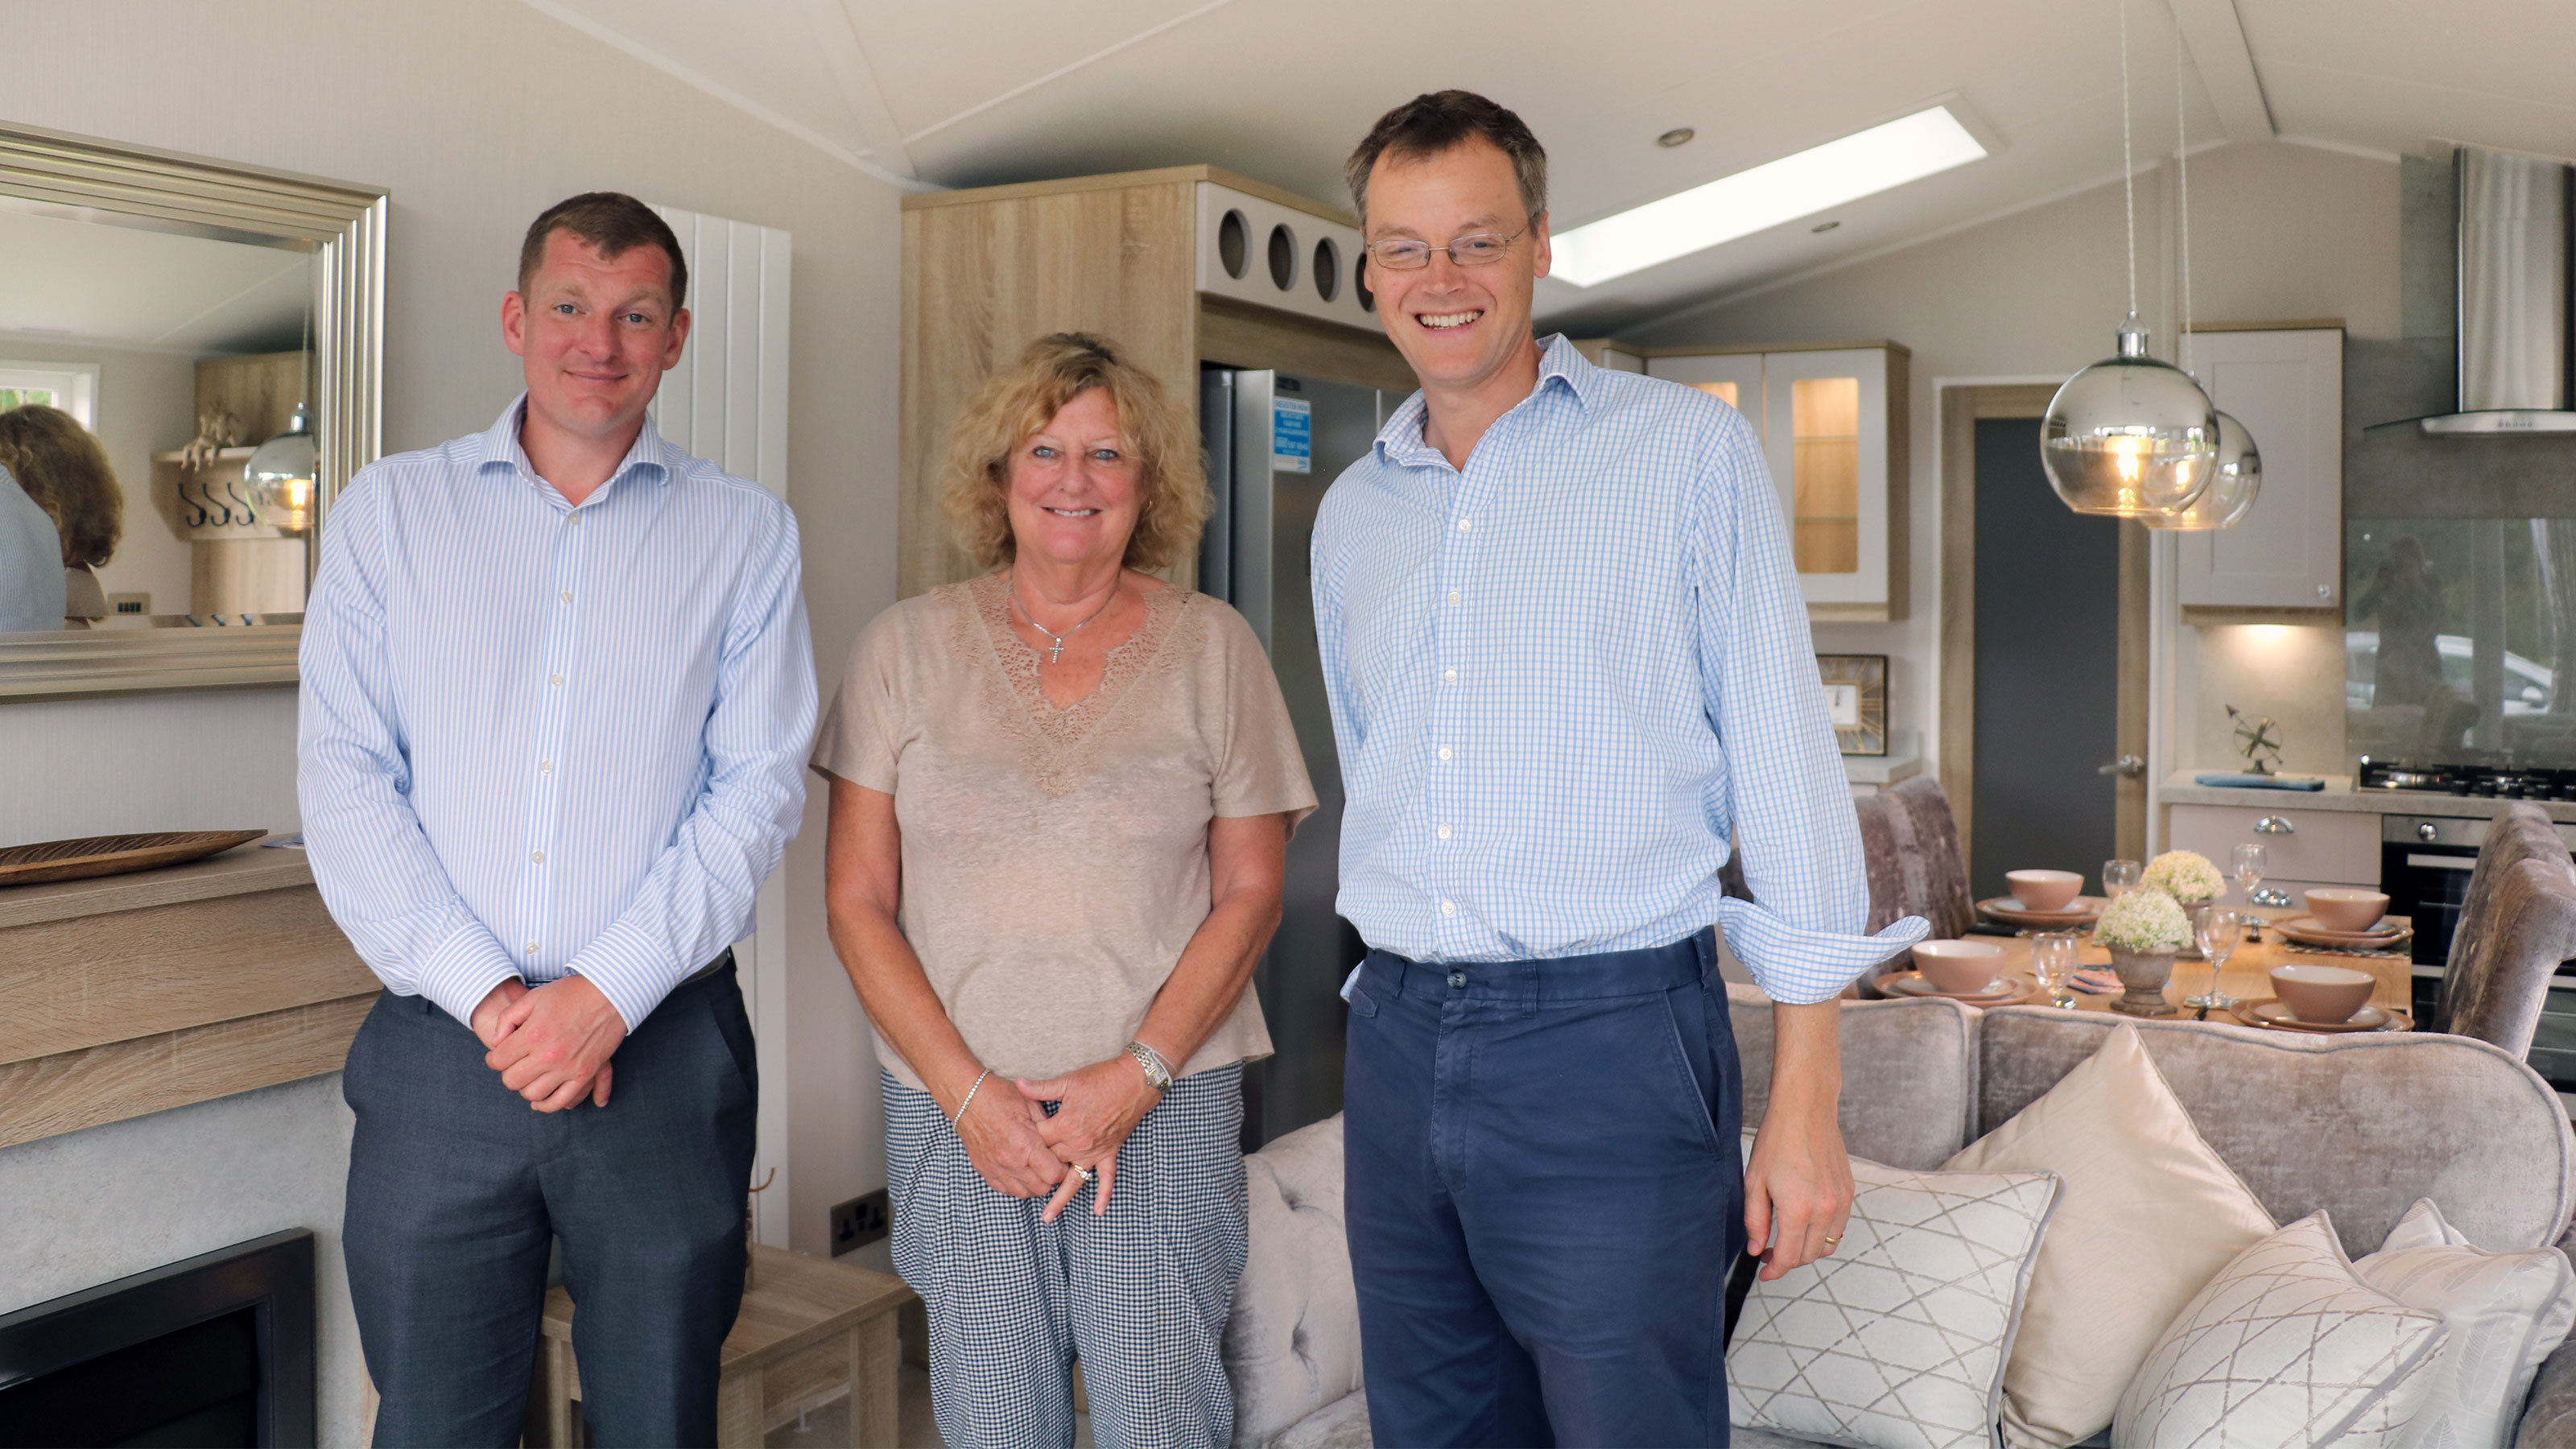 Michael-Tomlinson-MP-for-Mid-Dorset-and-North-Poole-visits-Merley-Court-Holiday-Park